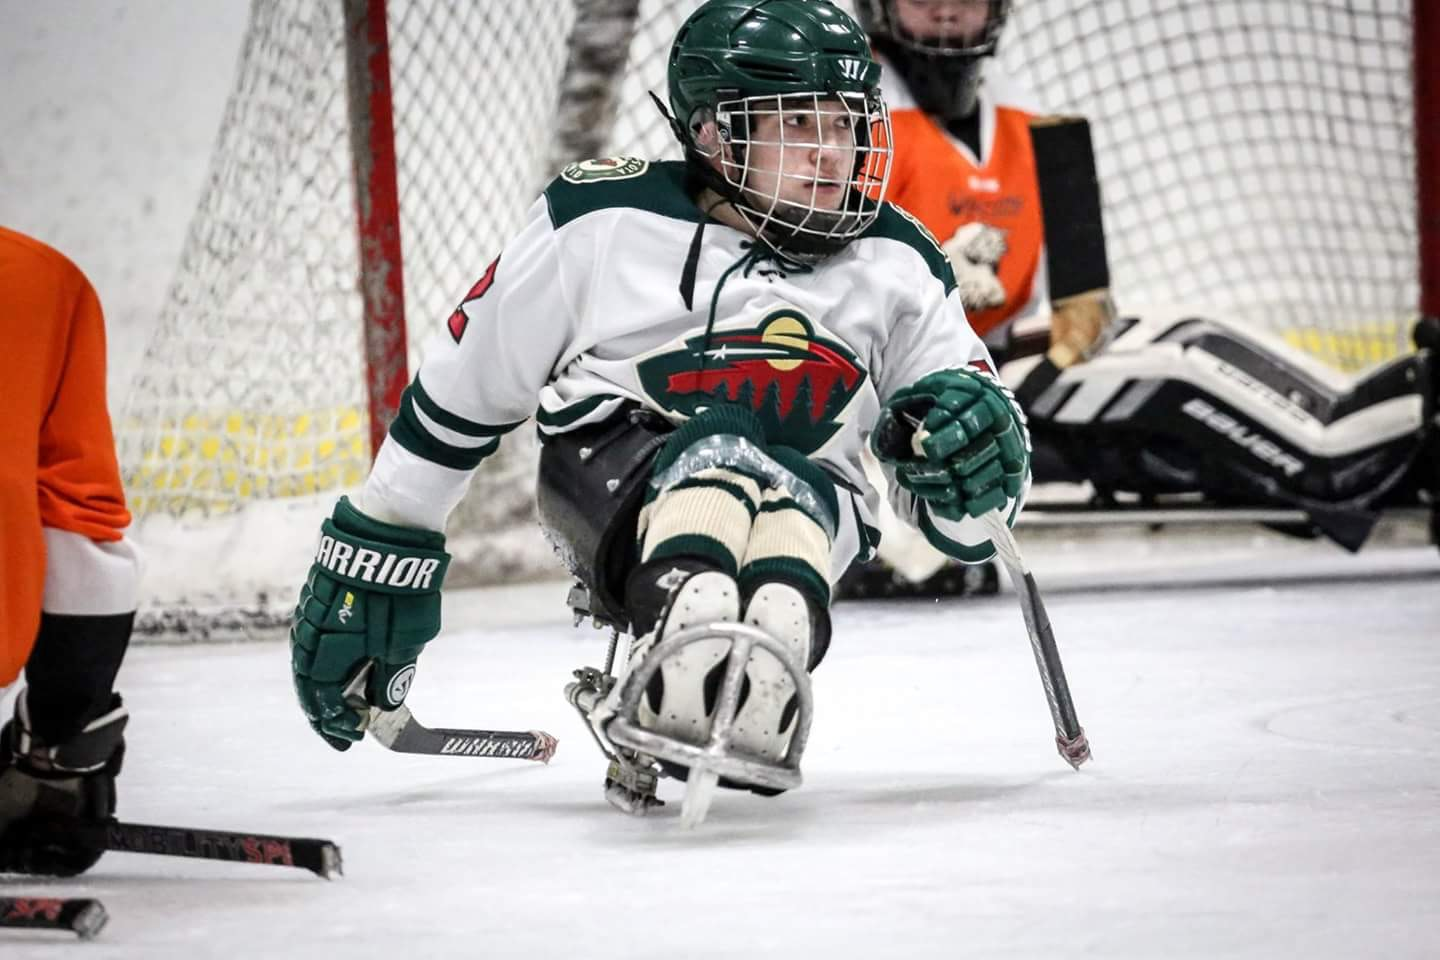 How the Hockey Grant helped Blake pursue his Paralympic dream